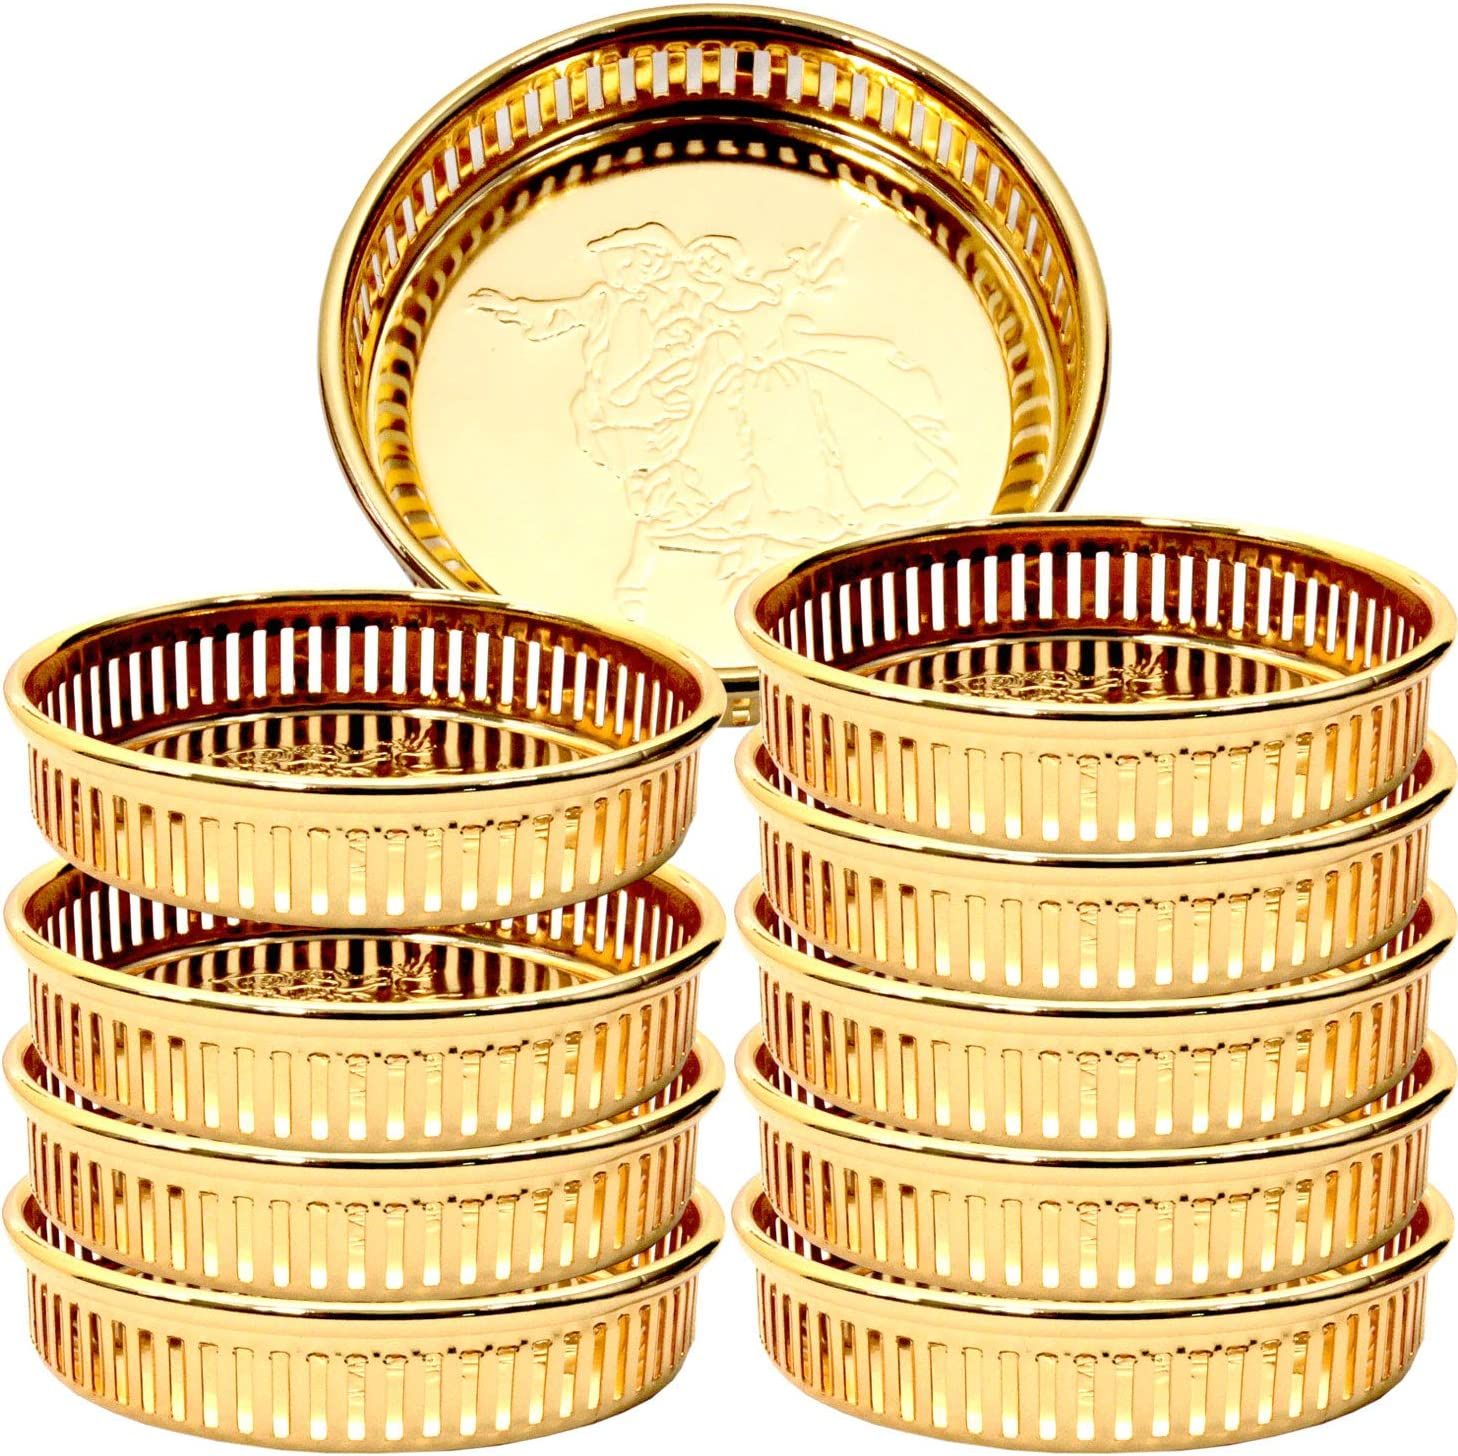 Maro Megastore (Pack of 10) 3-Inch x 3-Inch x 0.7-Inch Round Iron Gold Plated Candy Sweet Cupcakes Nuts Peanuts Candy Sweet Biscuit Dessert Tea Dried Fruits Macaron Cookies Stand Bucket Ashtray TS-159